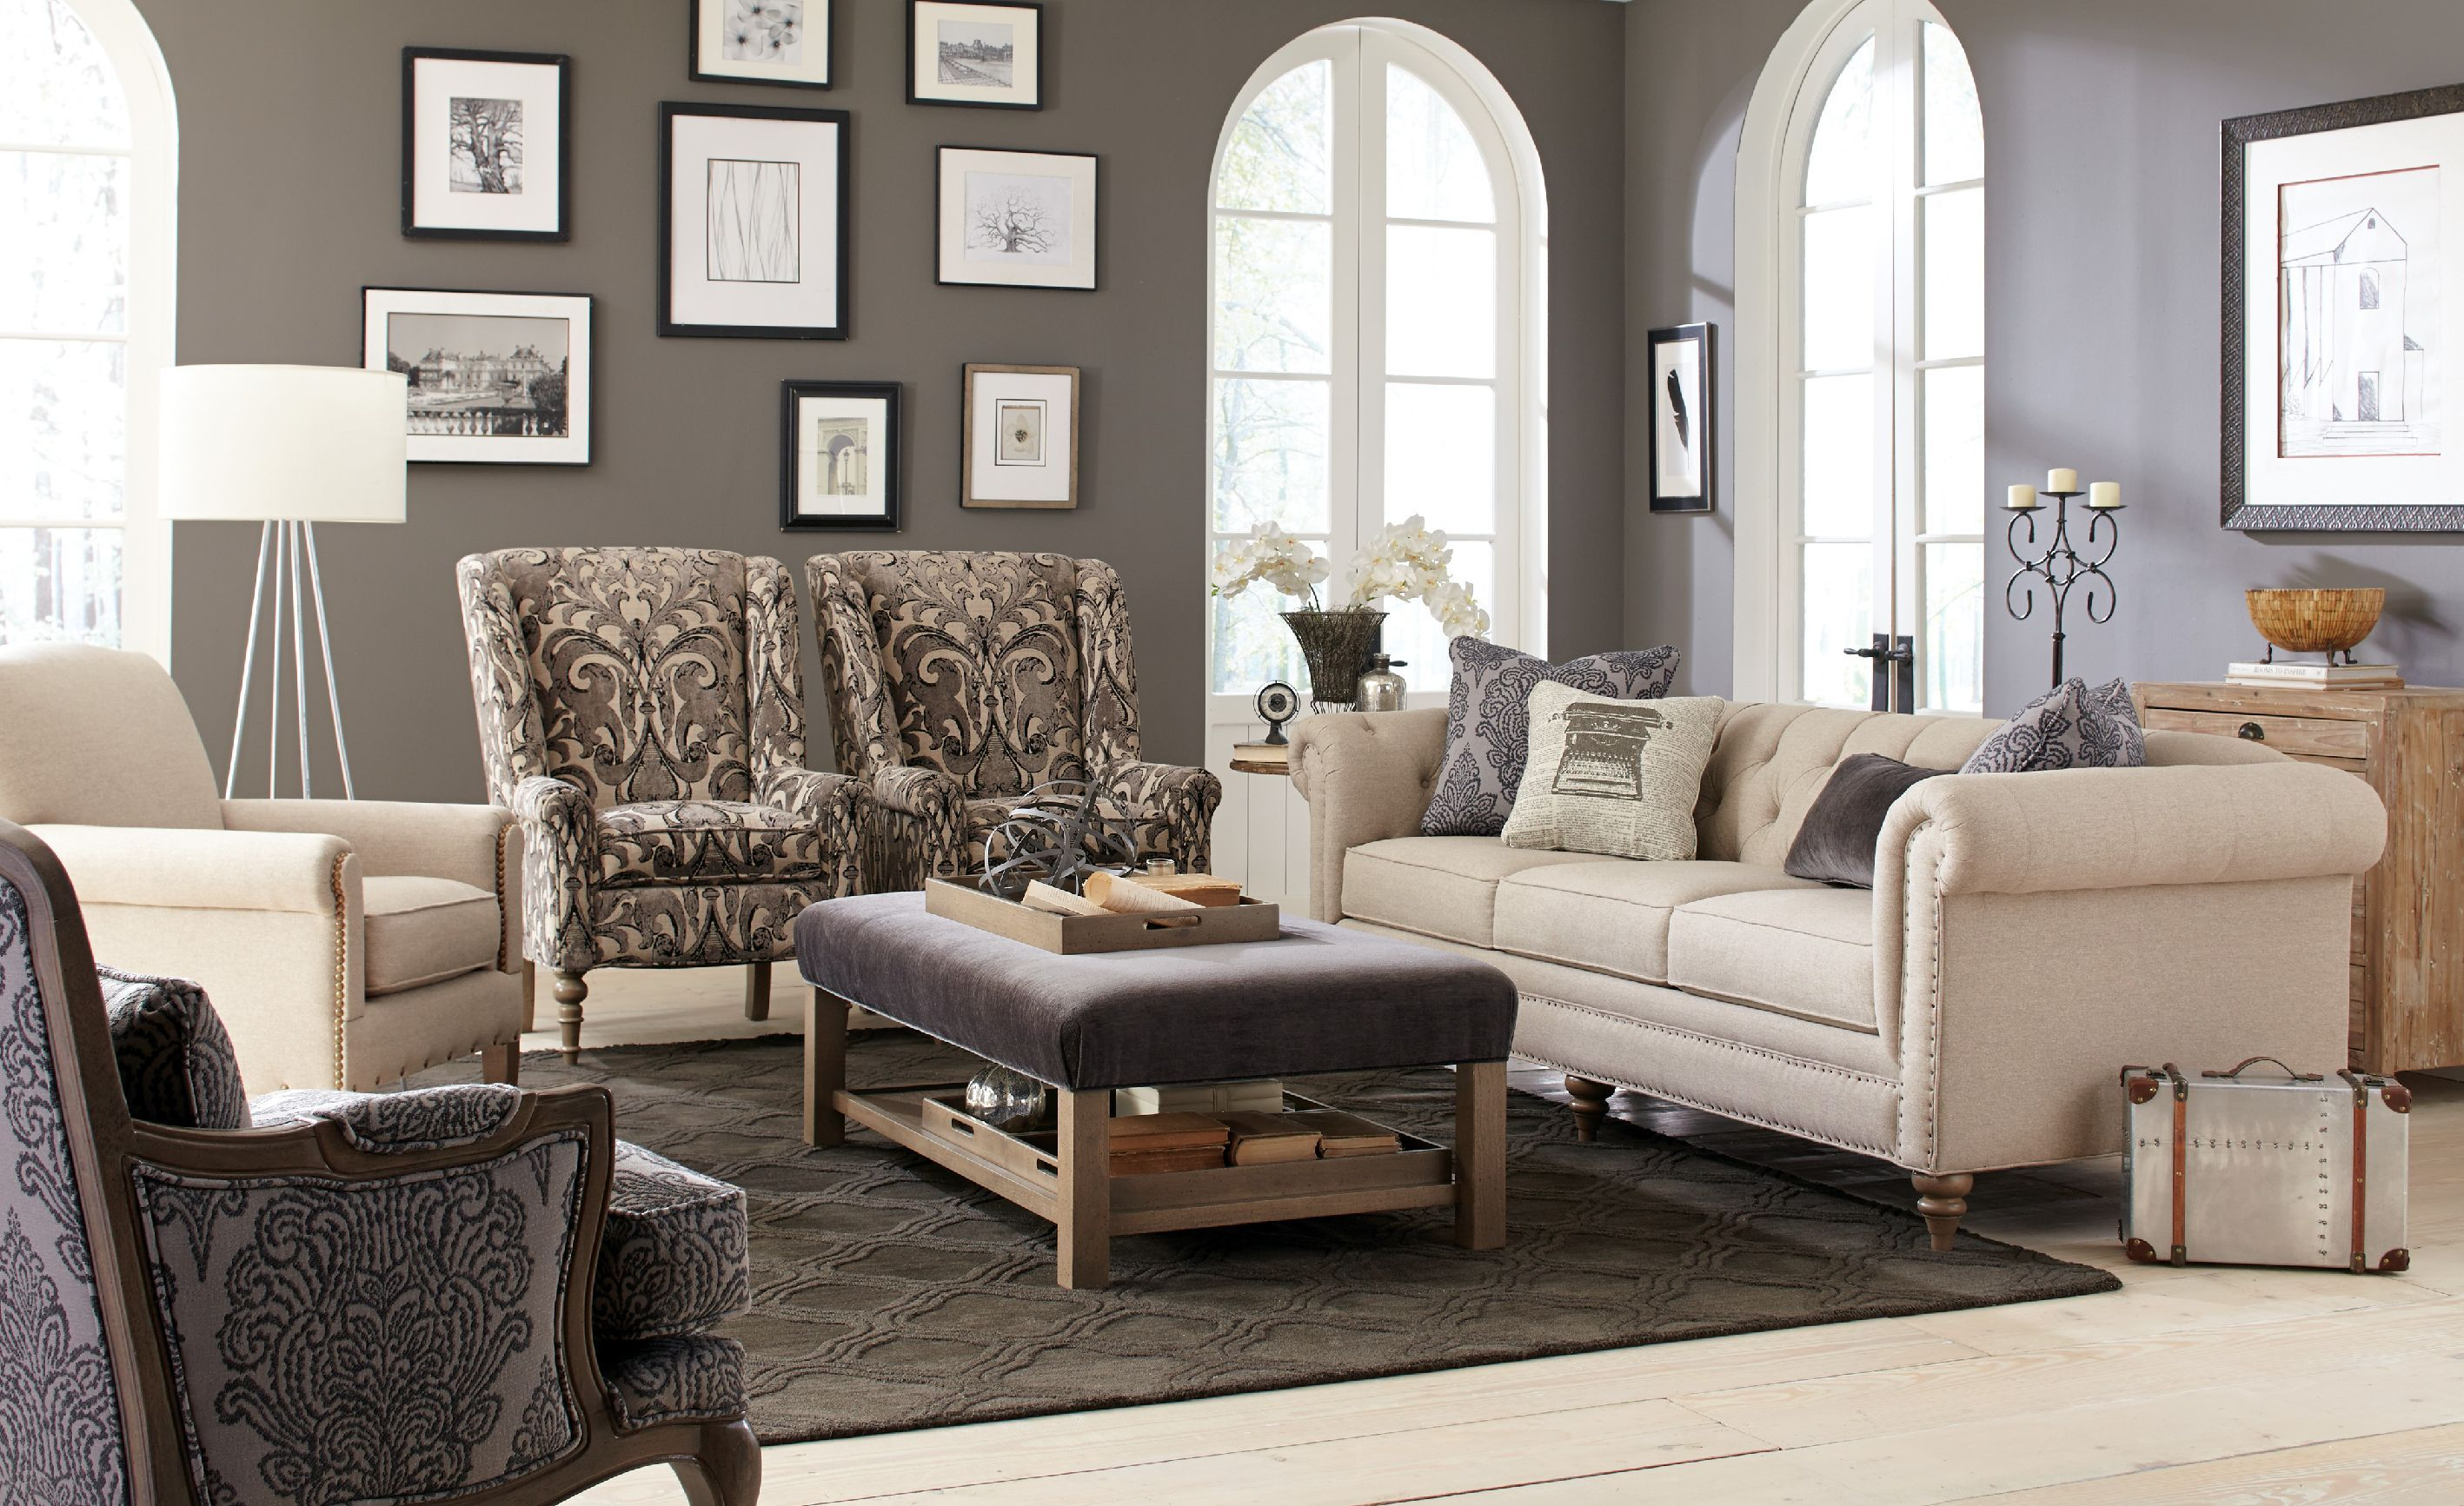 Wonderful Craftmaster Living Room Sofa 743254   Tyndall Furniture Galleries, INC    Charlotte, North Carolina